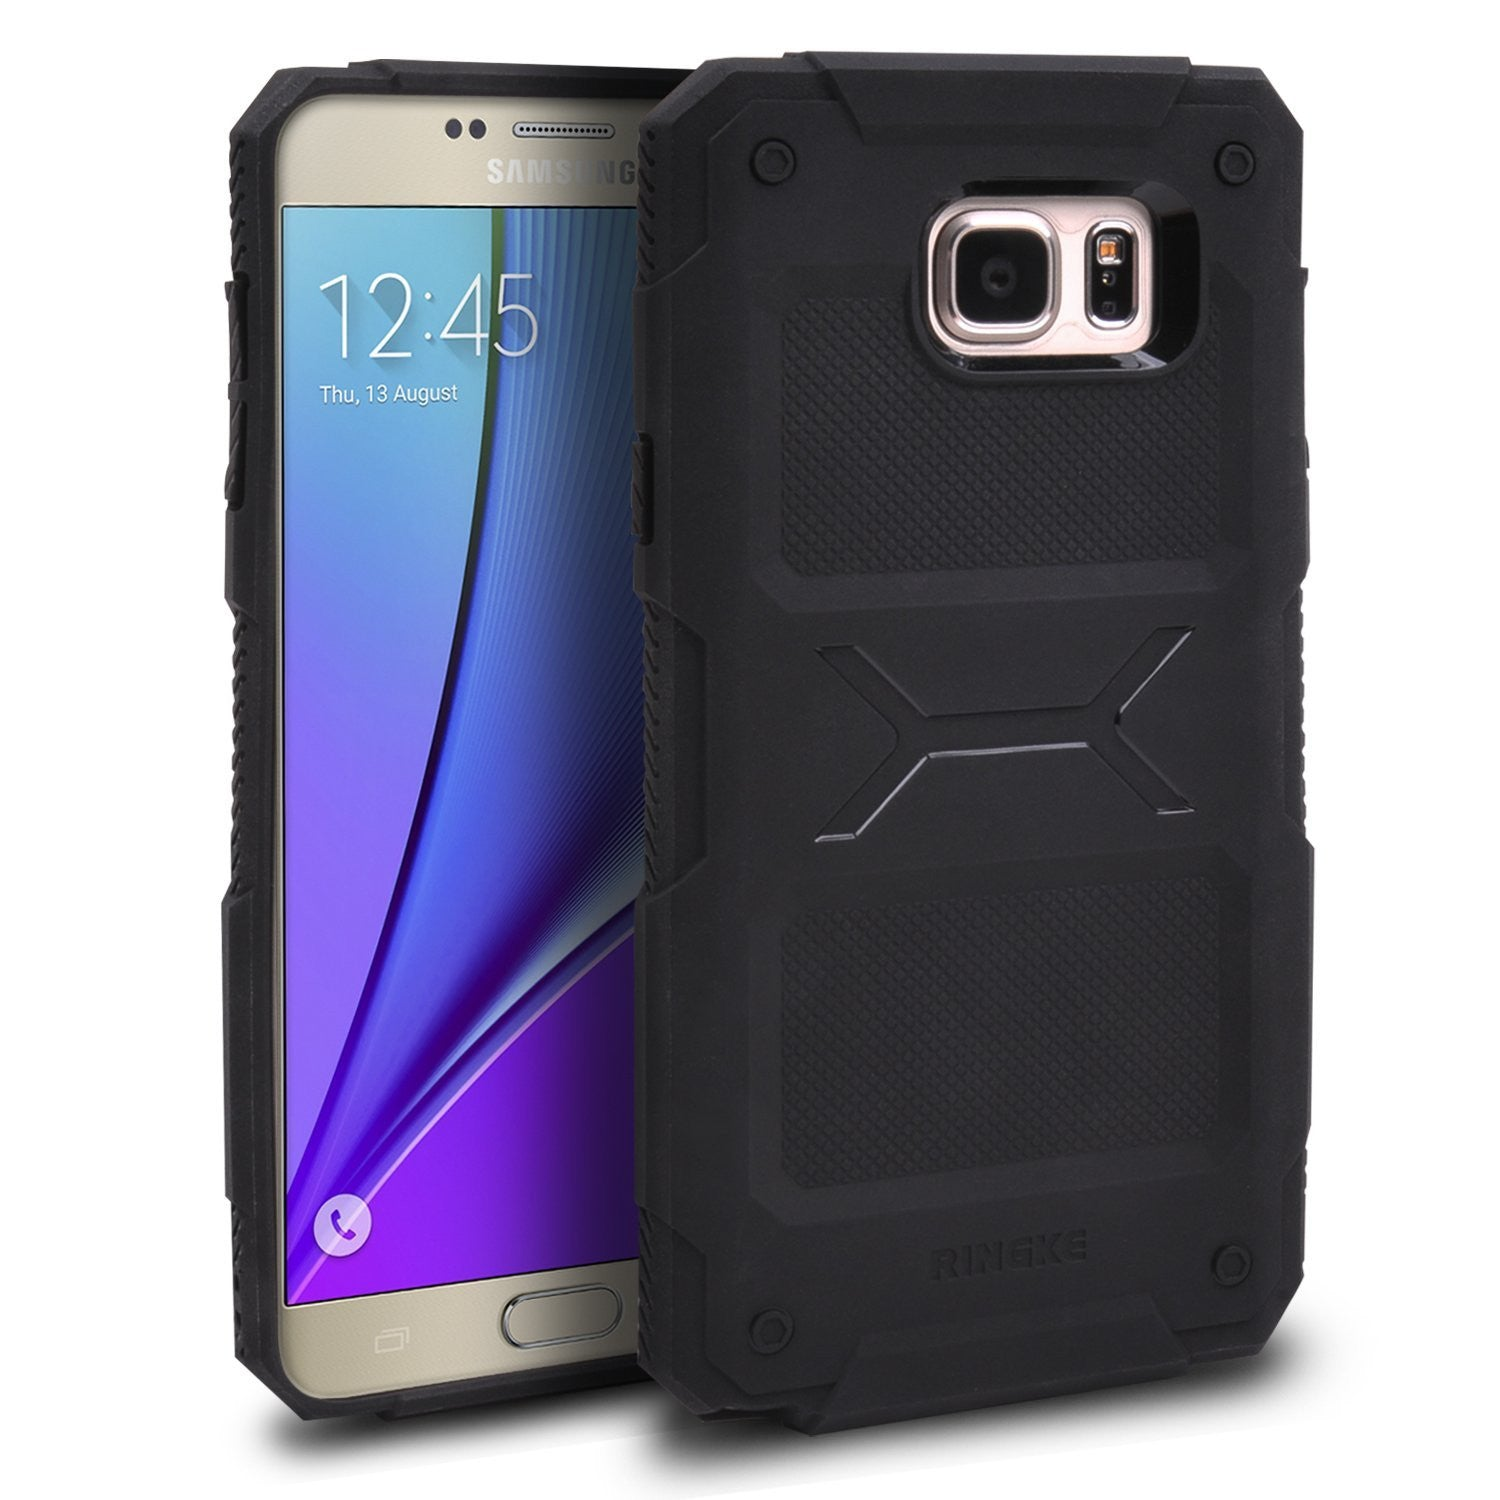 ringke rebel case for samsung galaxy note 5